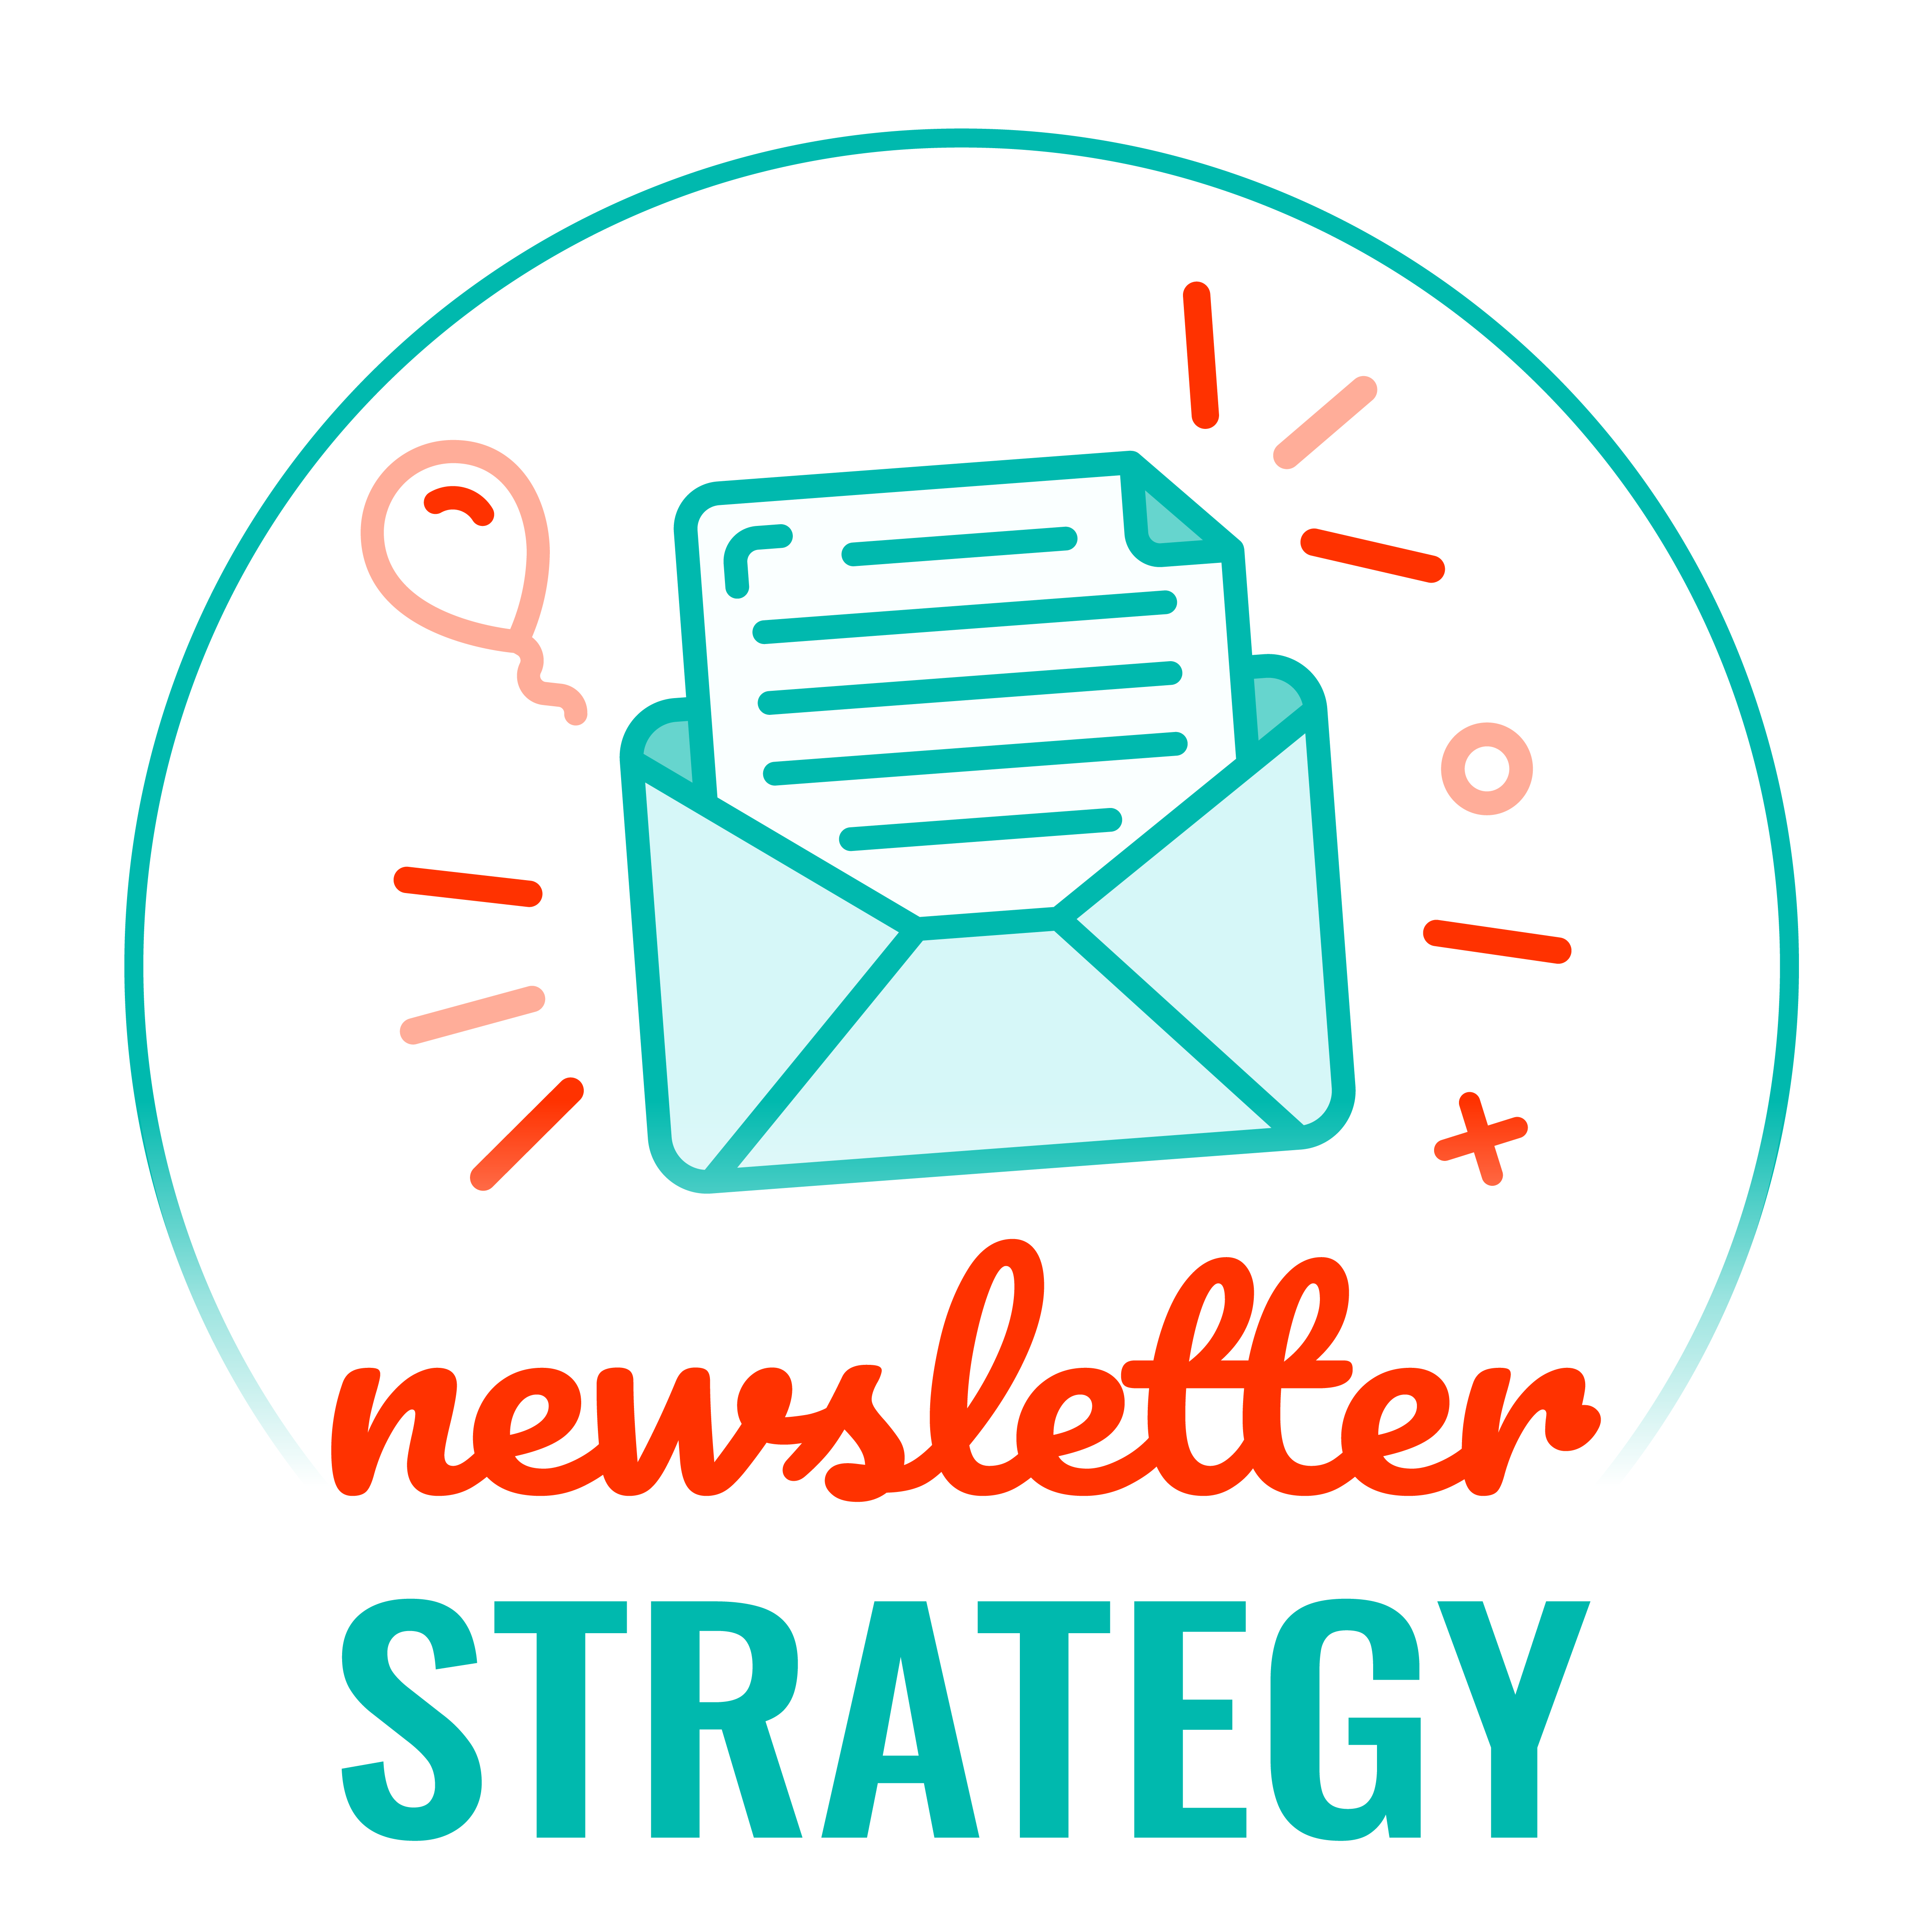 Newsletter Strategy